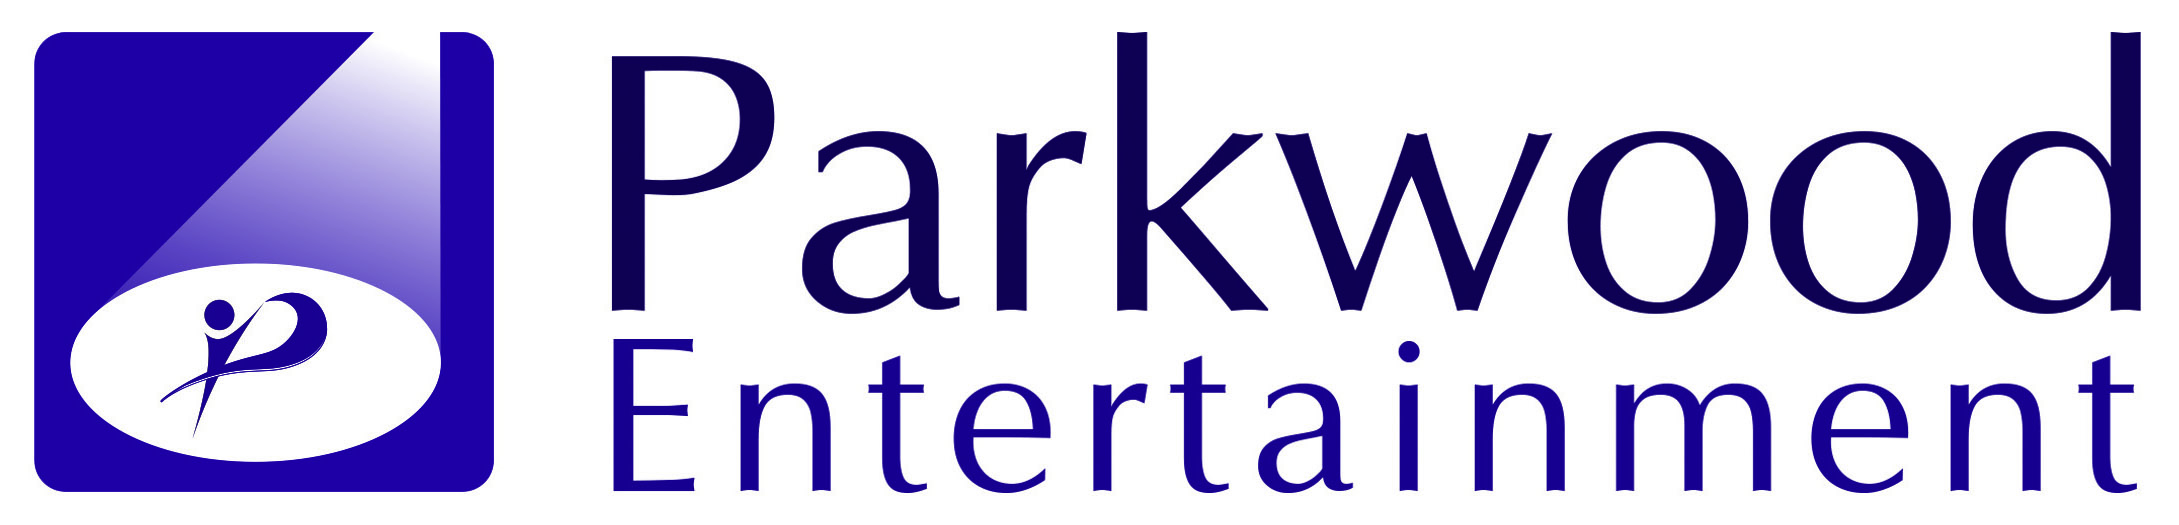 Job opportunity: Front of House Manager, Longridge, Preston, UK with Parkwood Entertainment